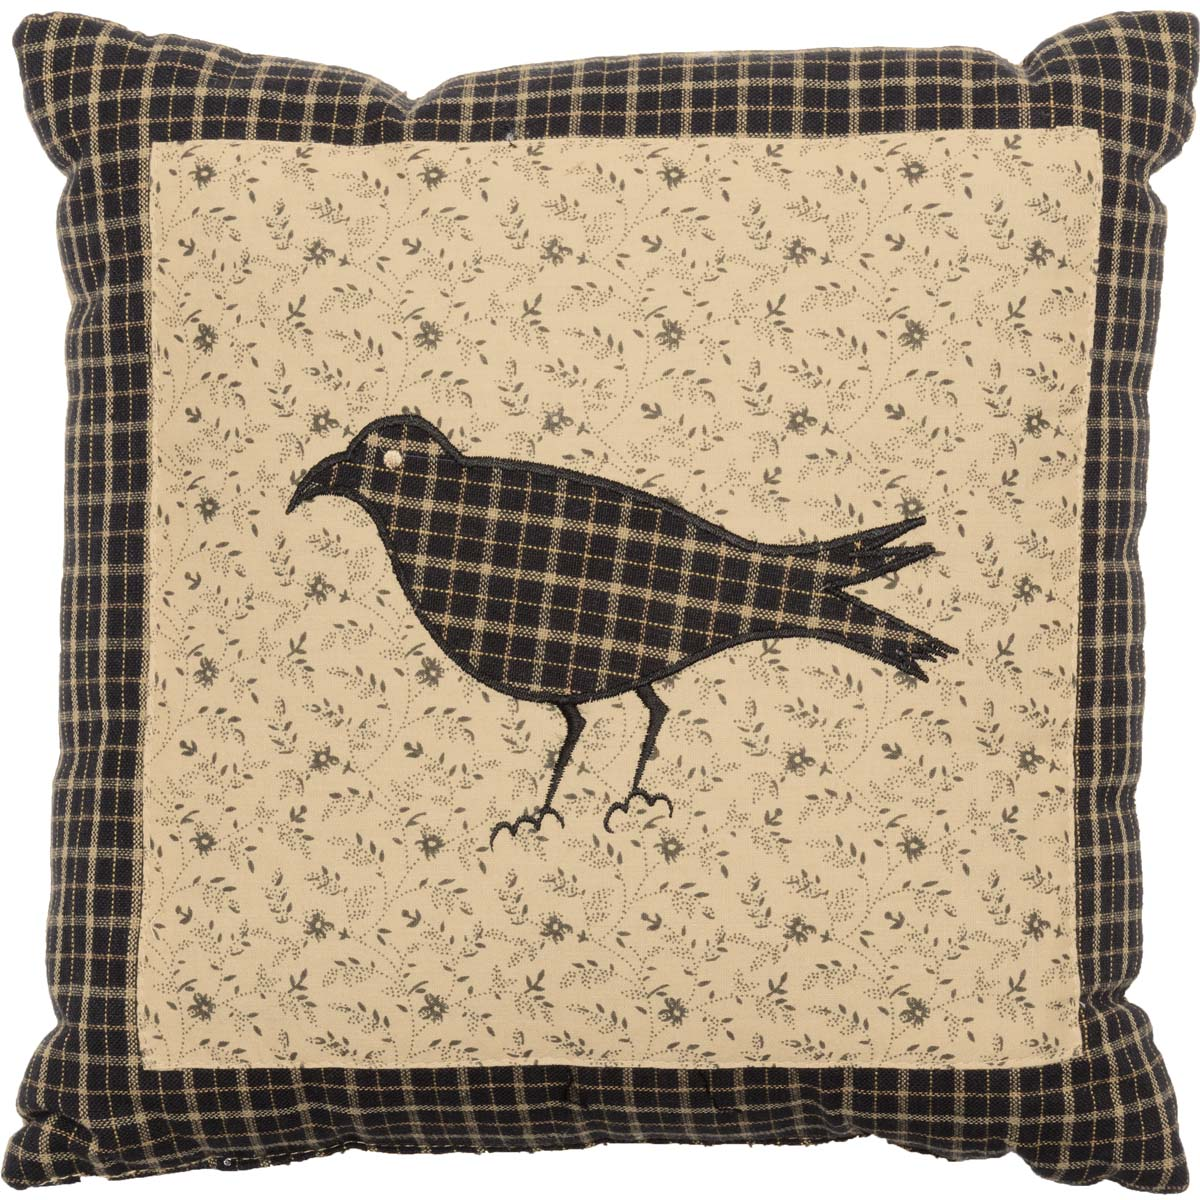 Kettle Grove Pillow Crow 10x10 - Woodrol